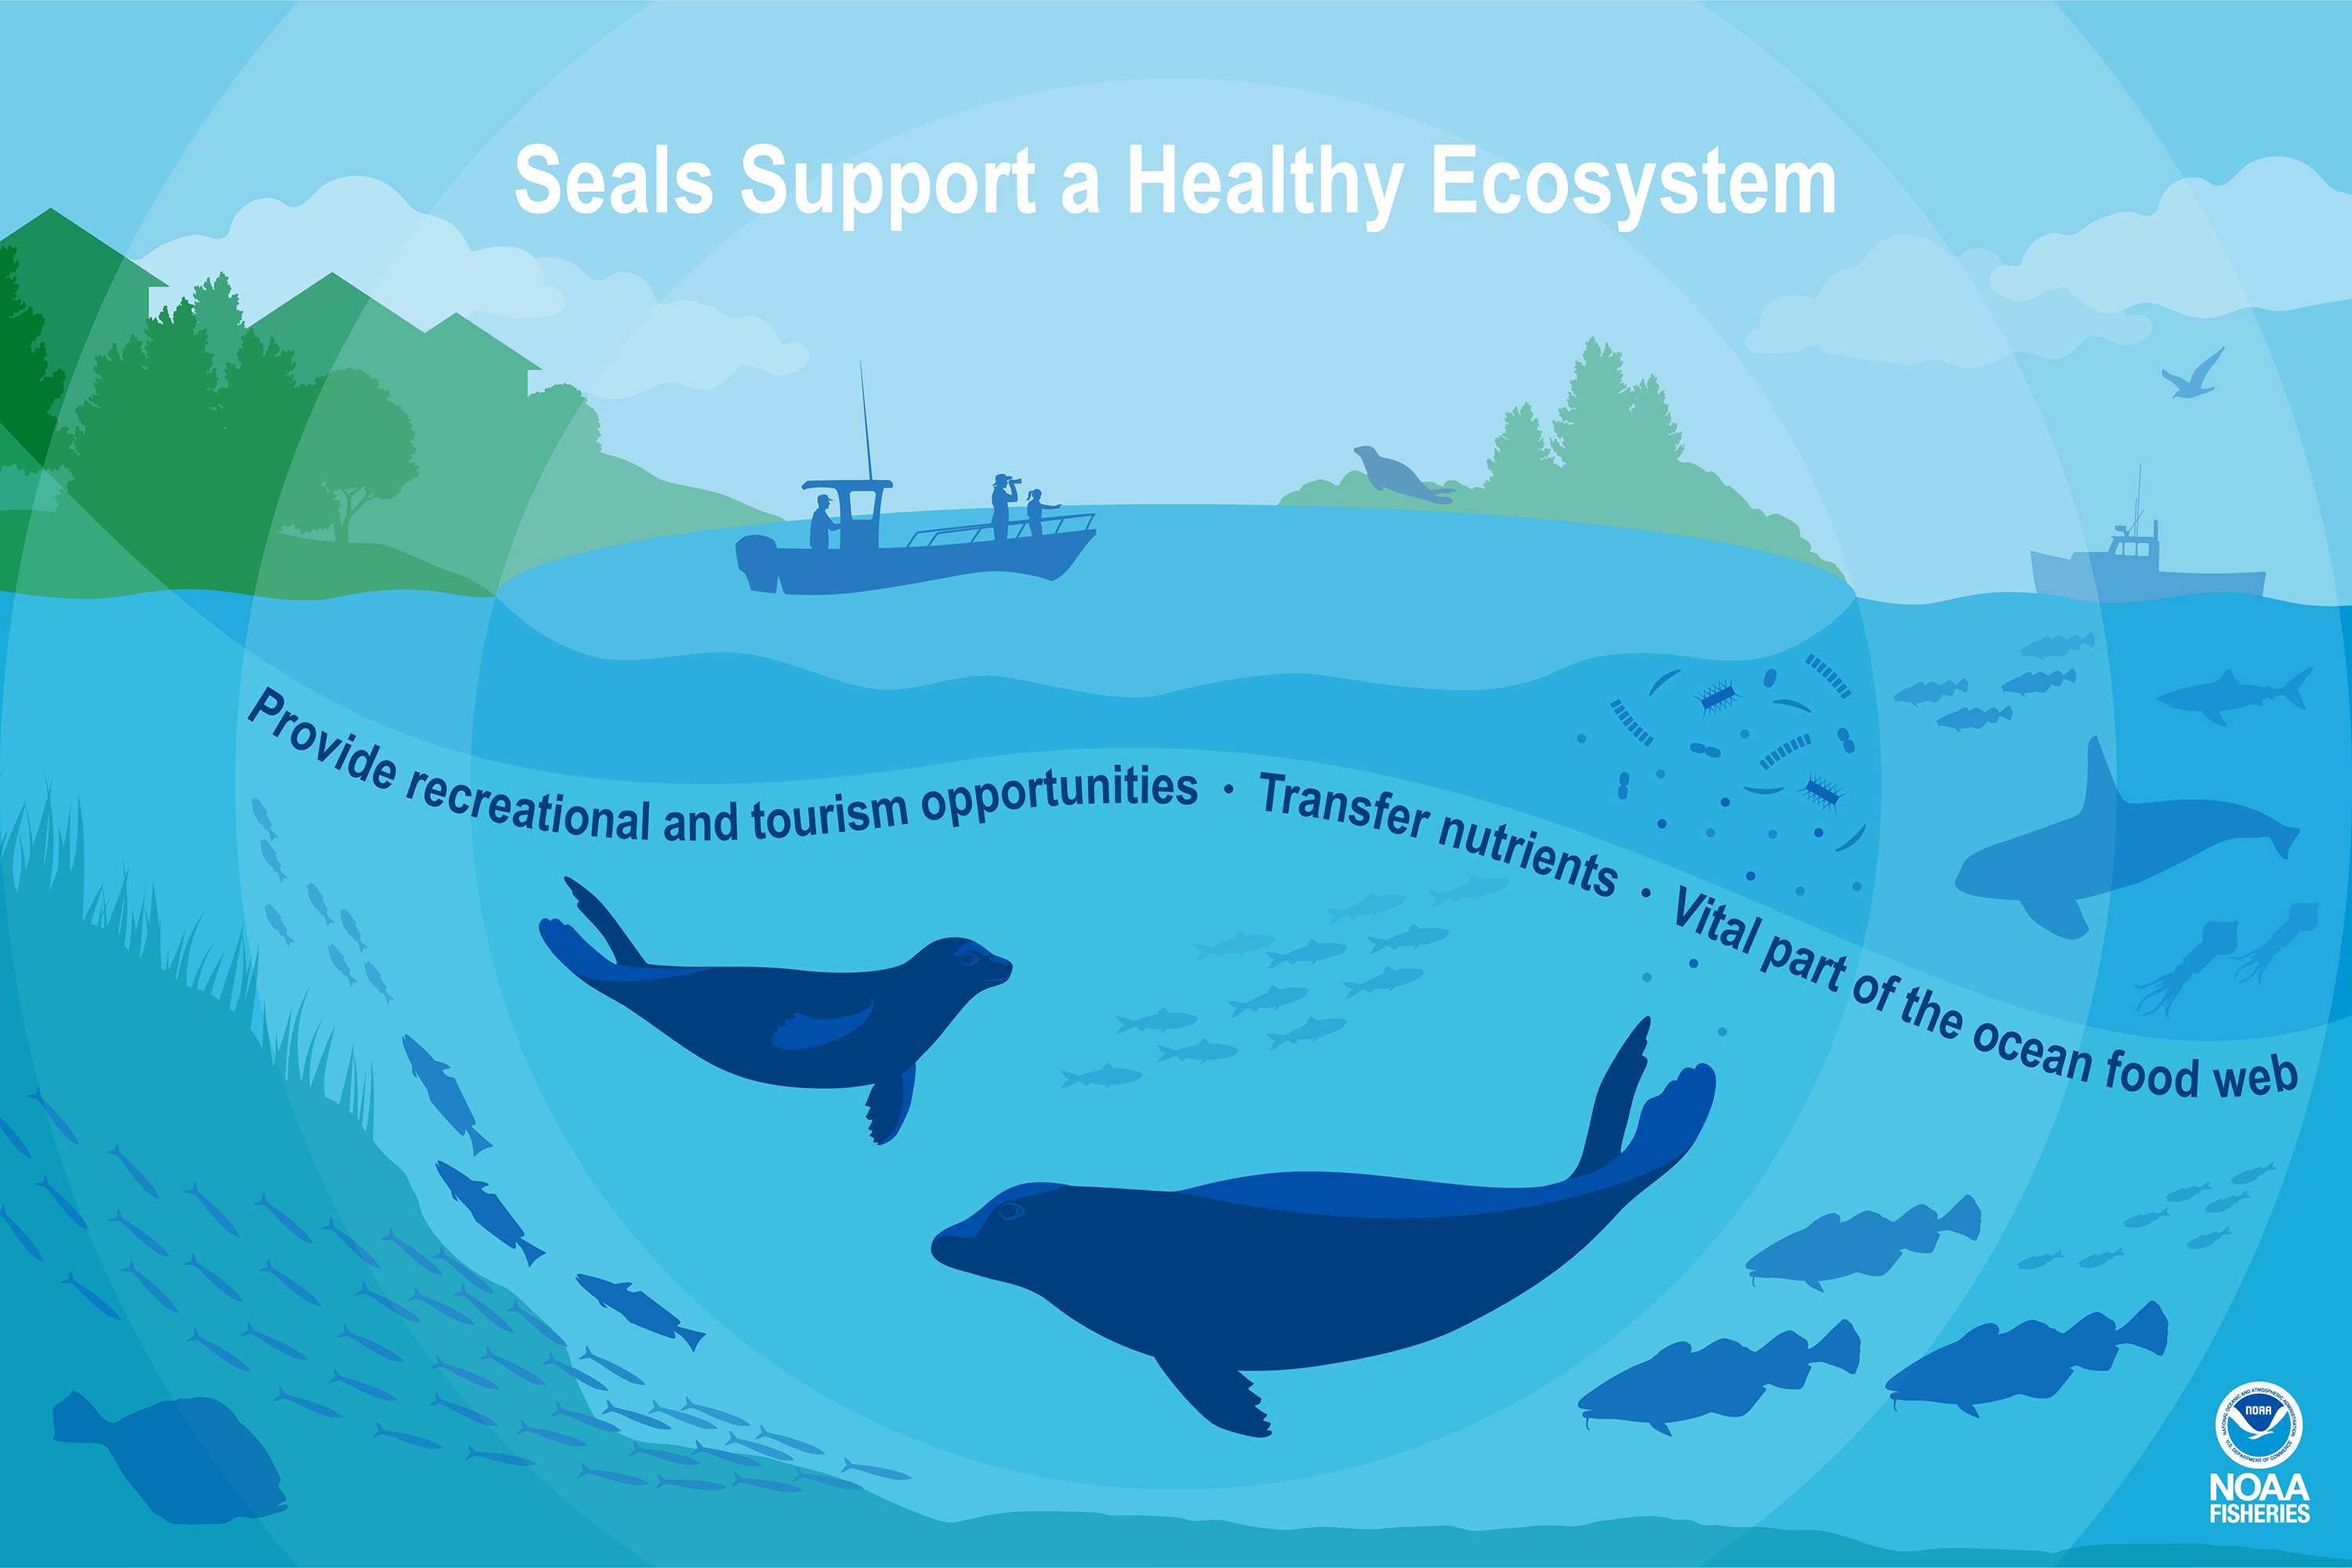 A larger harbor seal and a smaller gray seal swim at the center of a circular illustration of an ecosystem to portray the vital role that seals play in supporting the food web and enhancing biodiversity. The illustration shows a tour boat with visitors viewing a seal in the distance to represent how seals provide recreational and tourism opportunities. The harbor seal chases a school of sand lances and small hake on the left, to show how seals consume a diverse diet of mostly small fish.